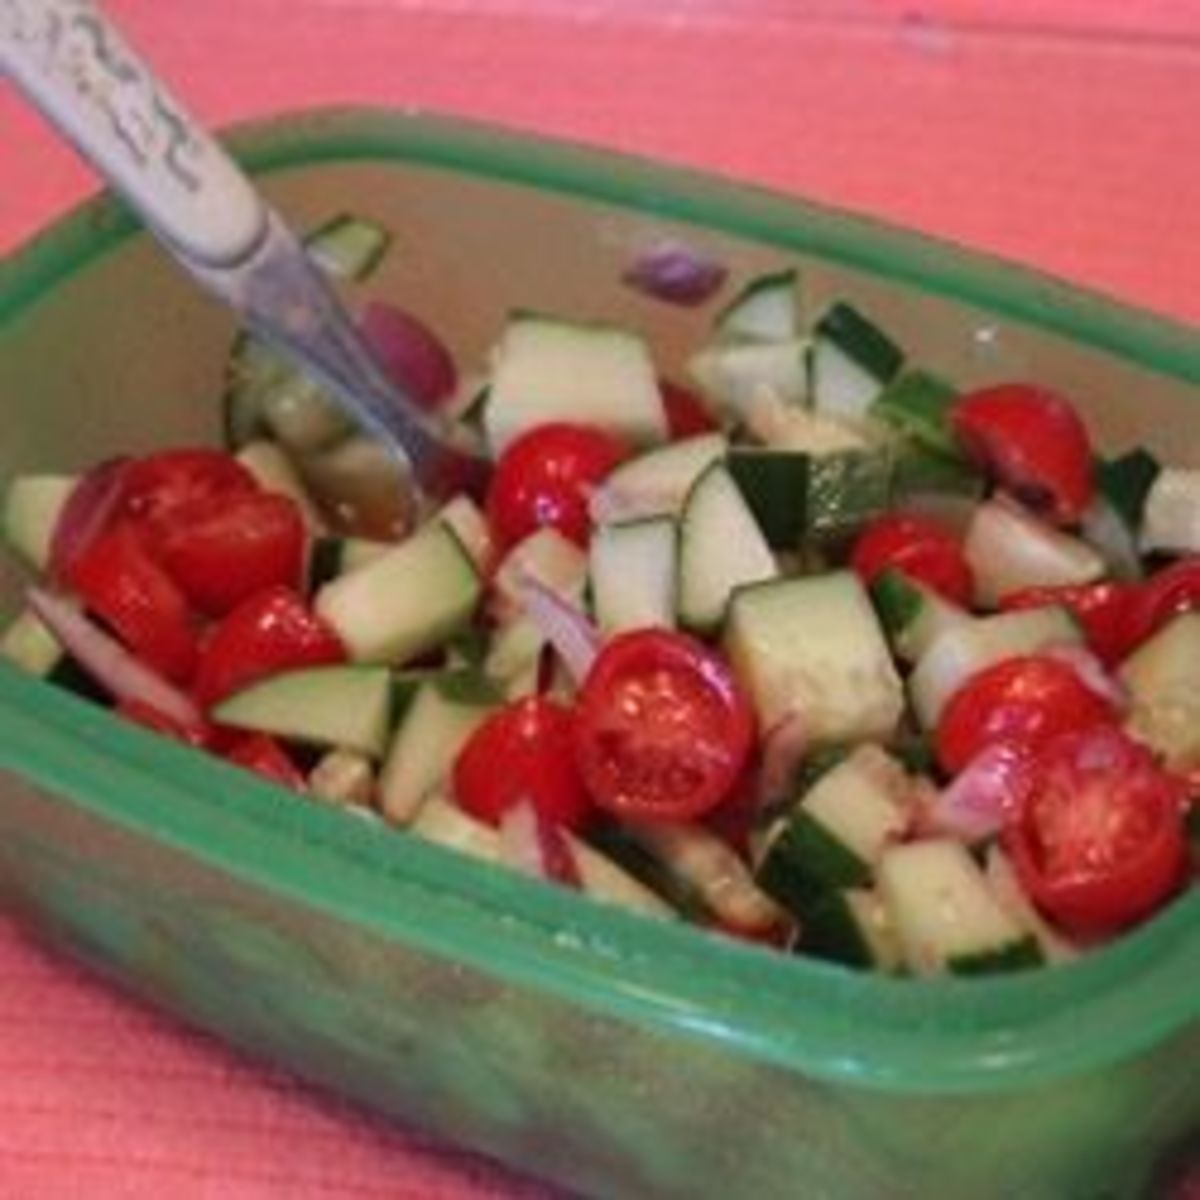 Tomato Cucumber Salad Recipe Ideas